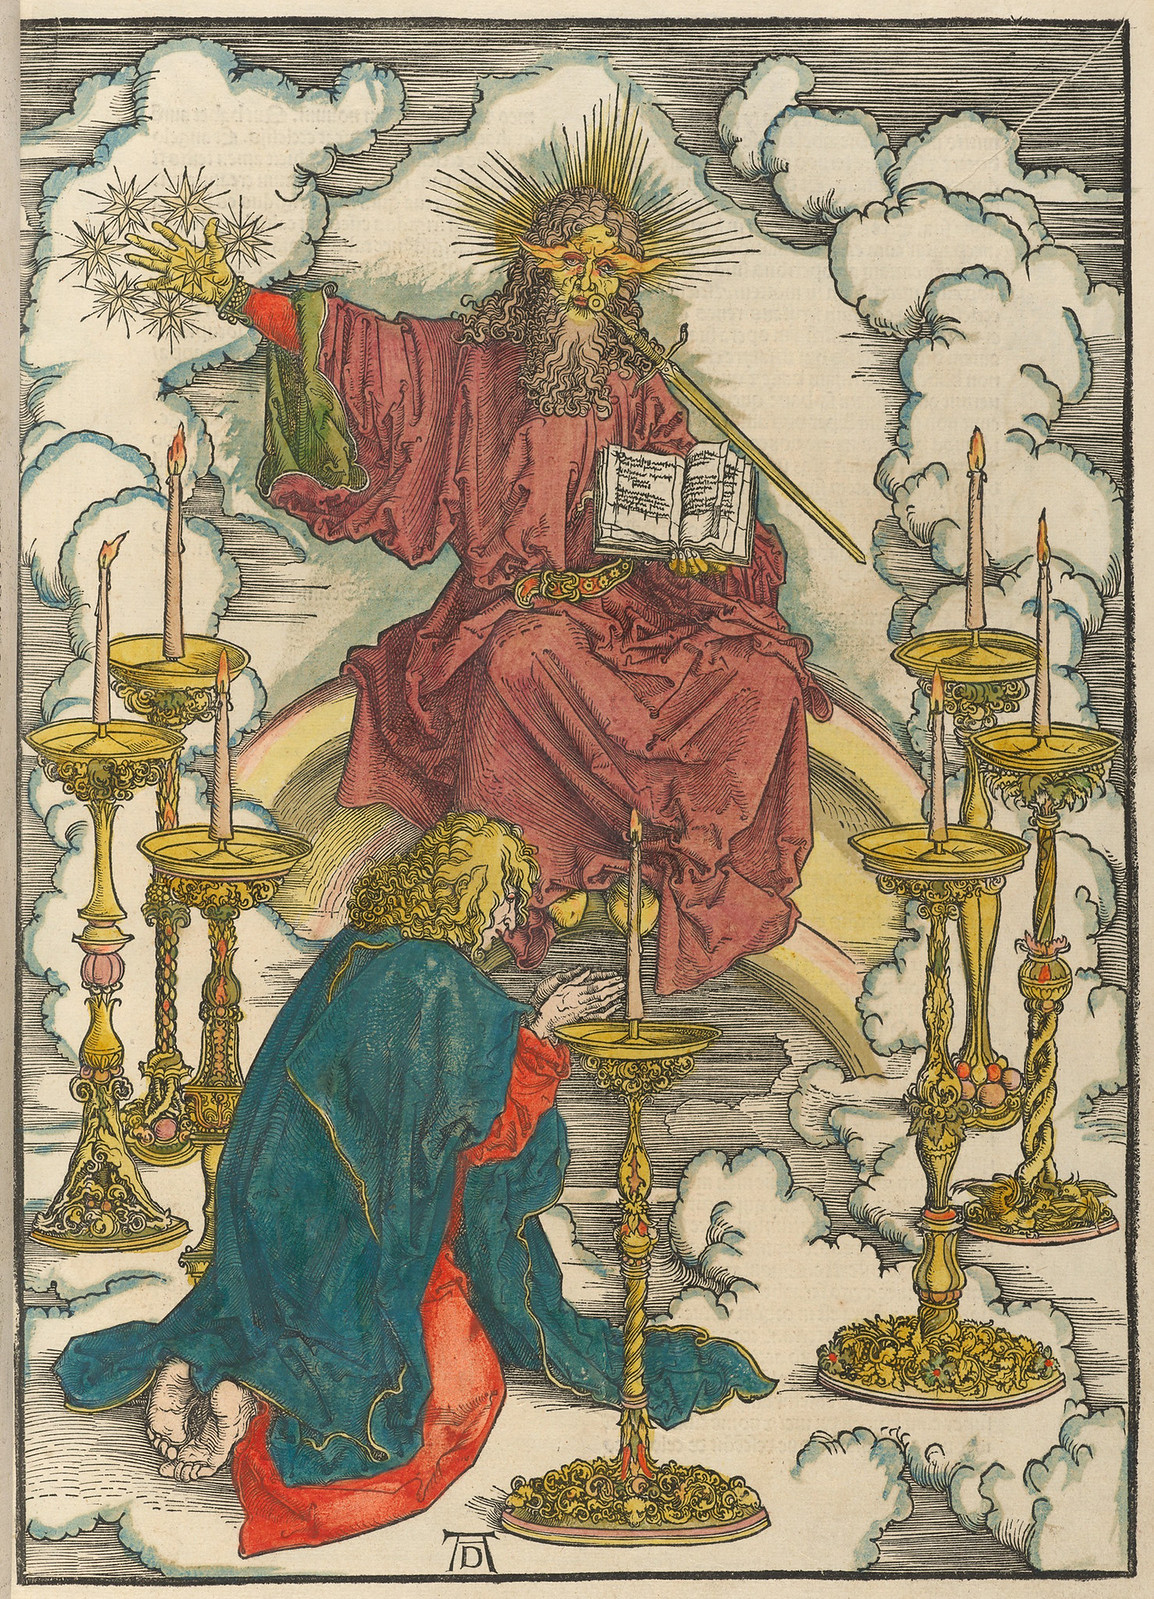 Albrecht Dürer - Vision of the seven candlesticks, Plate two of fifteen from the Latin edition of The Apocalypse series, hand colored, printed 1511